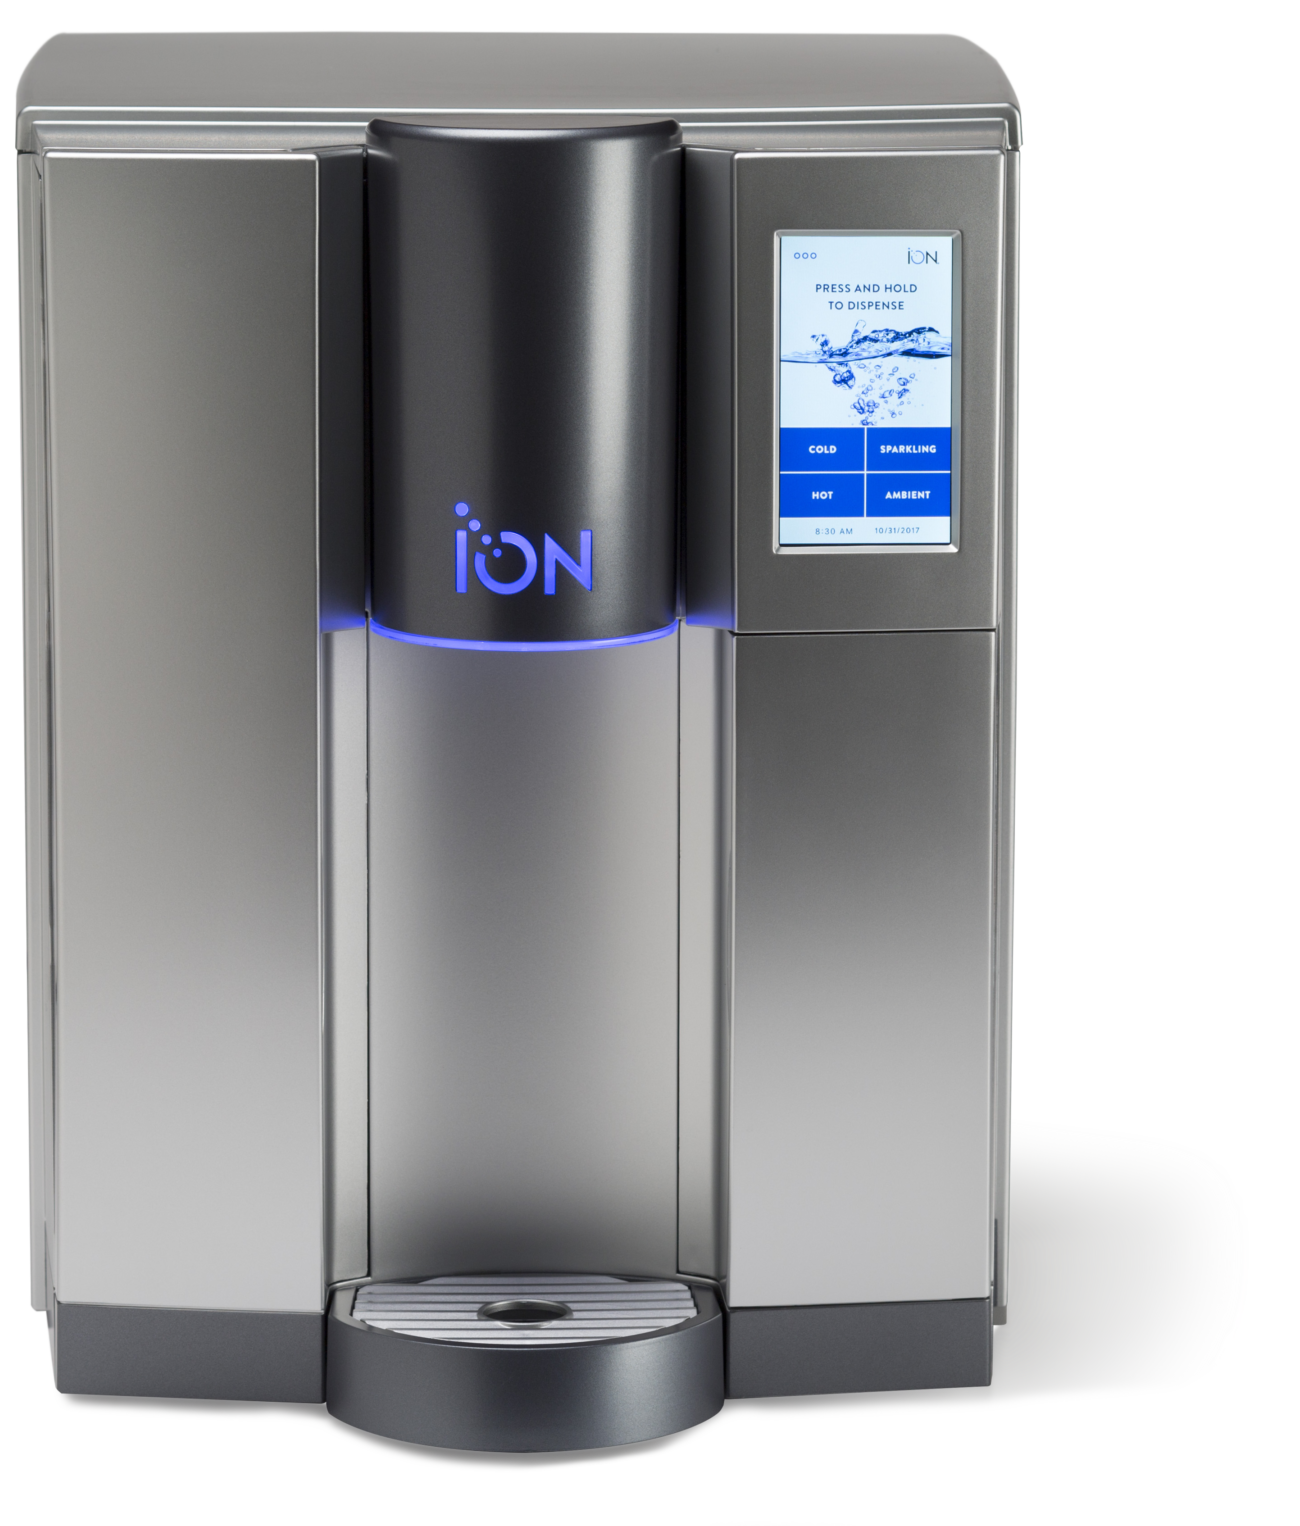 bin dispenser refrigerator lg countertop countertops water with side depth by ajmadison inch cgi ice counter and